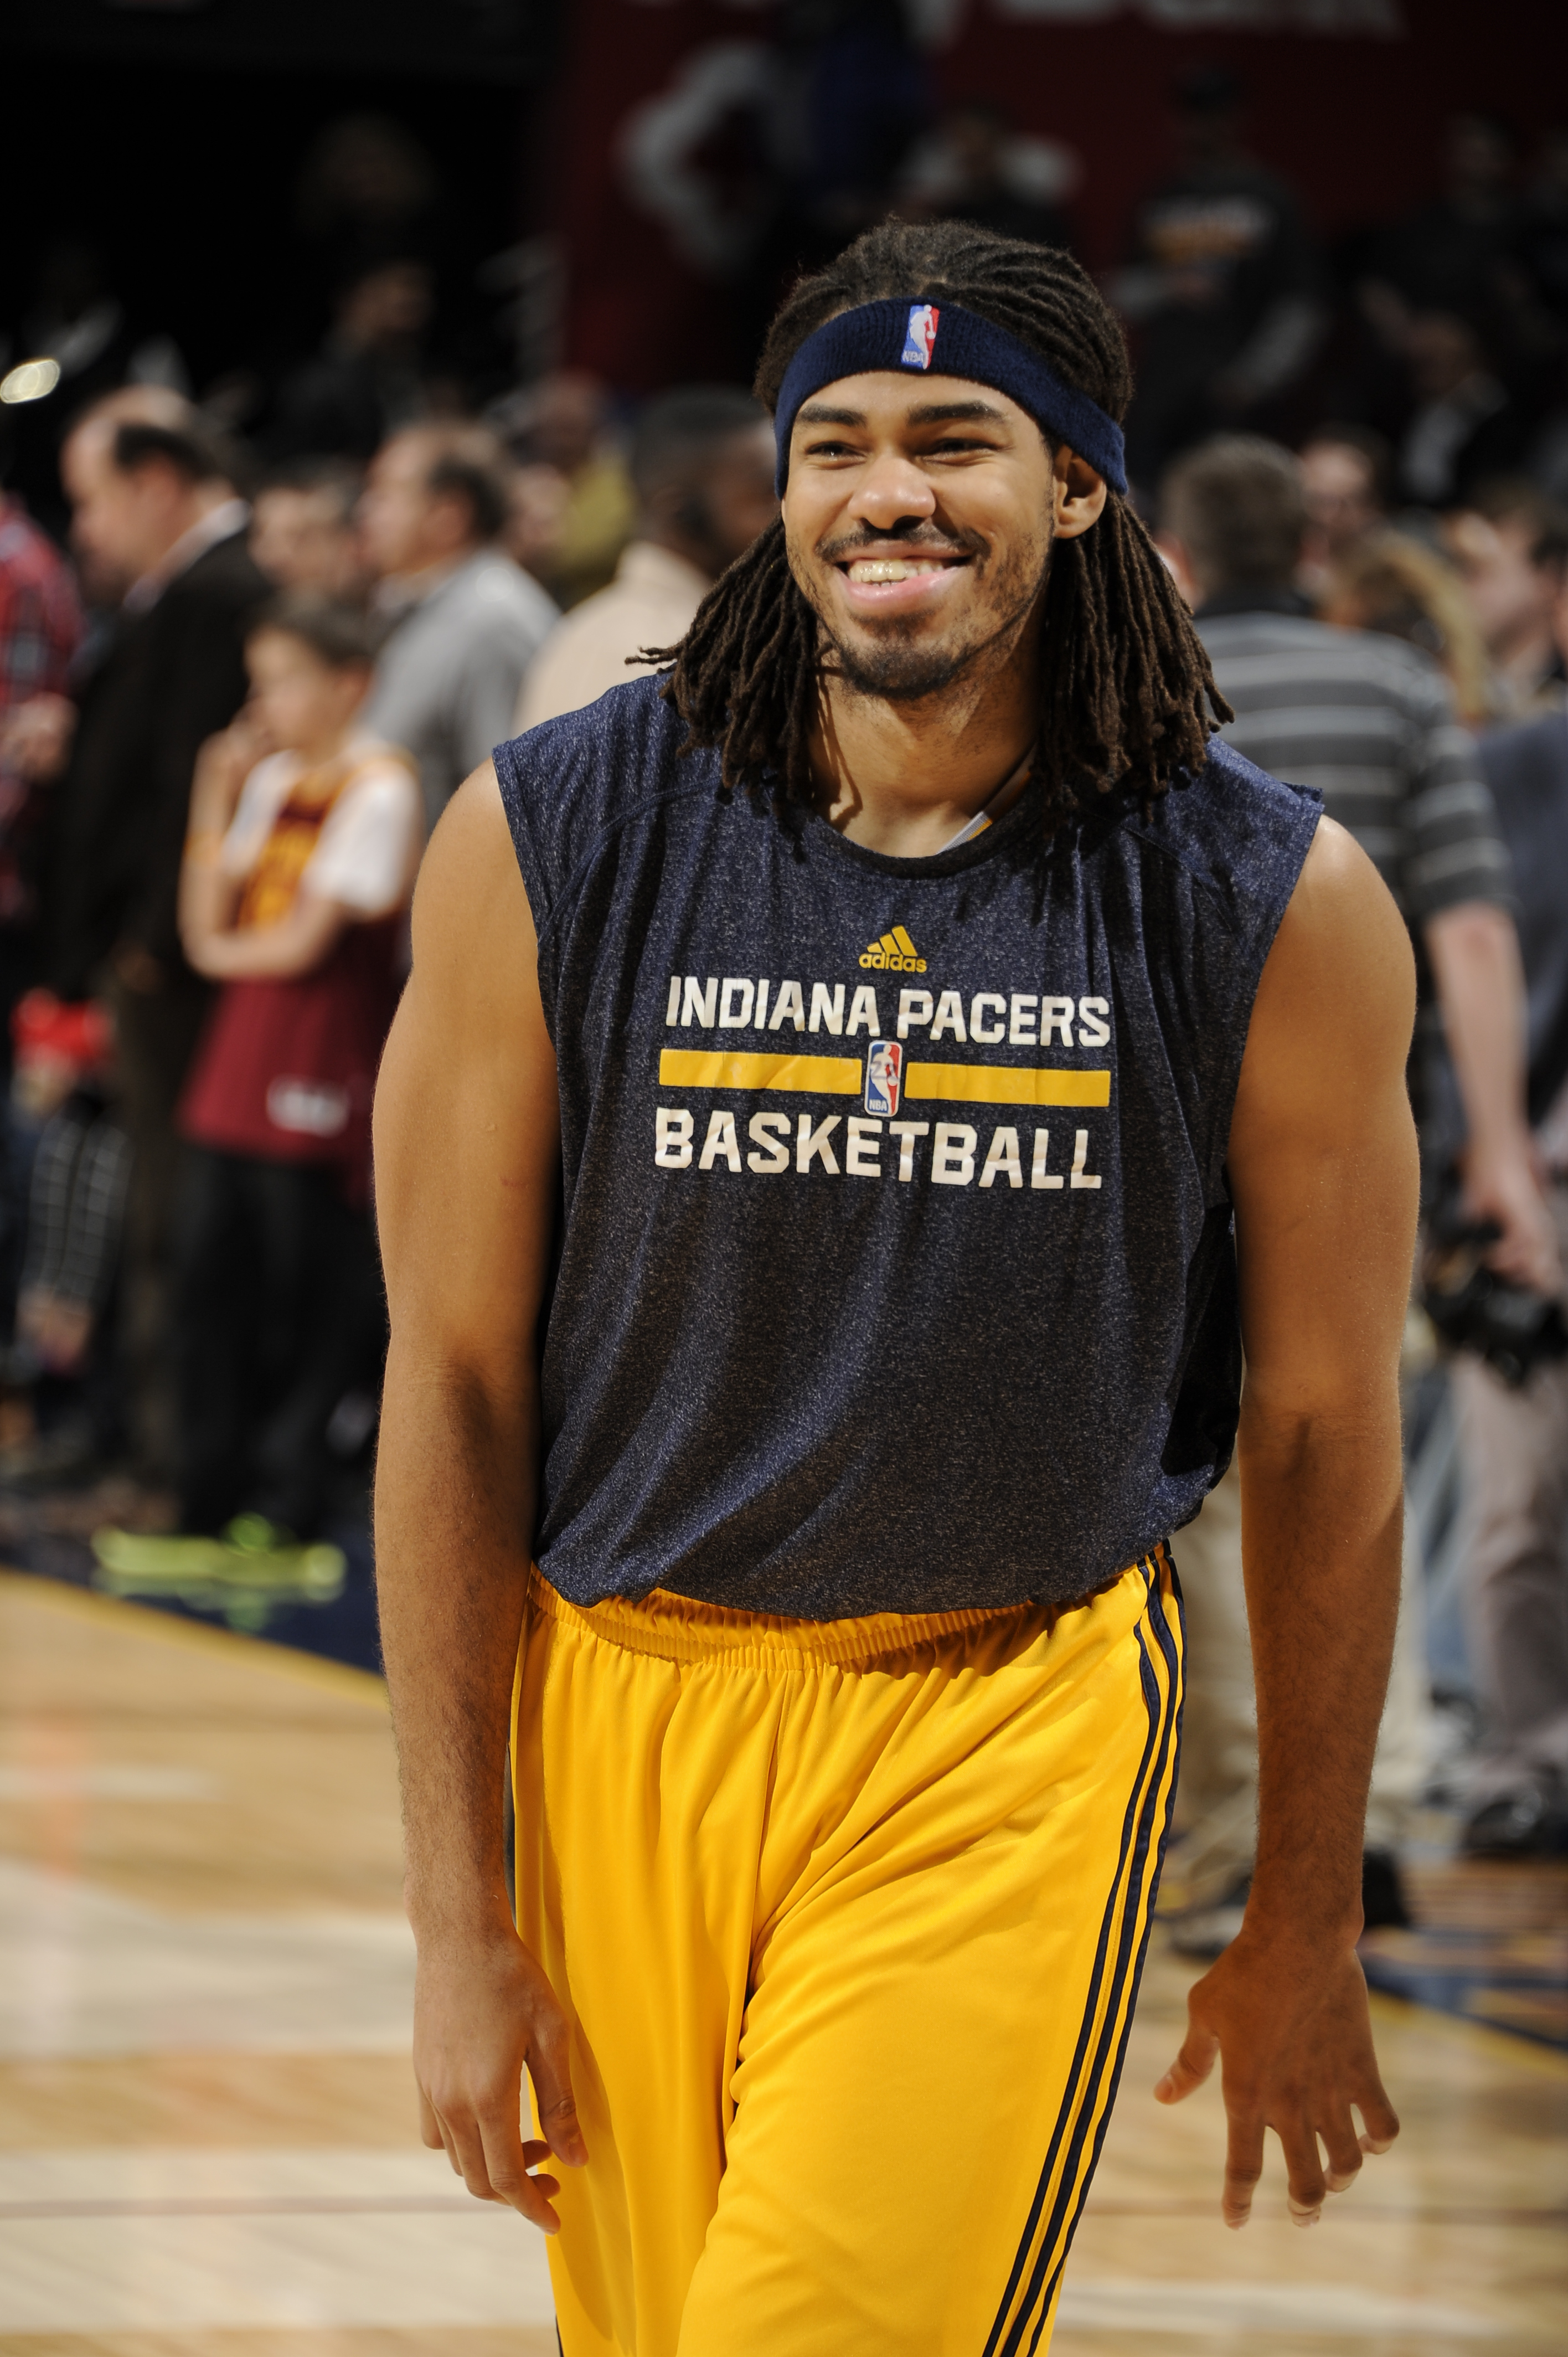 CLEVELAND, OH - MARCH 20: Chris Copeland #22 of the Indiana Pacers warms up before the game against the Cleveland Cavaliers on March 20, 2015 at Quicken Loans Arena in Cleveland, Ohio. (Photo by David Kyle/NBAE via Getty Images)